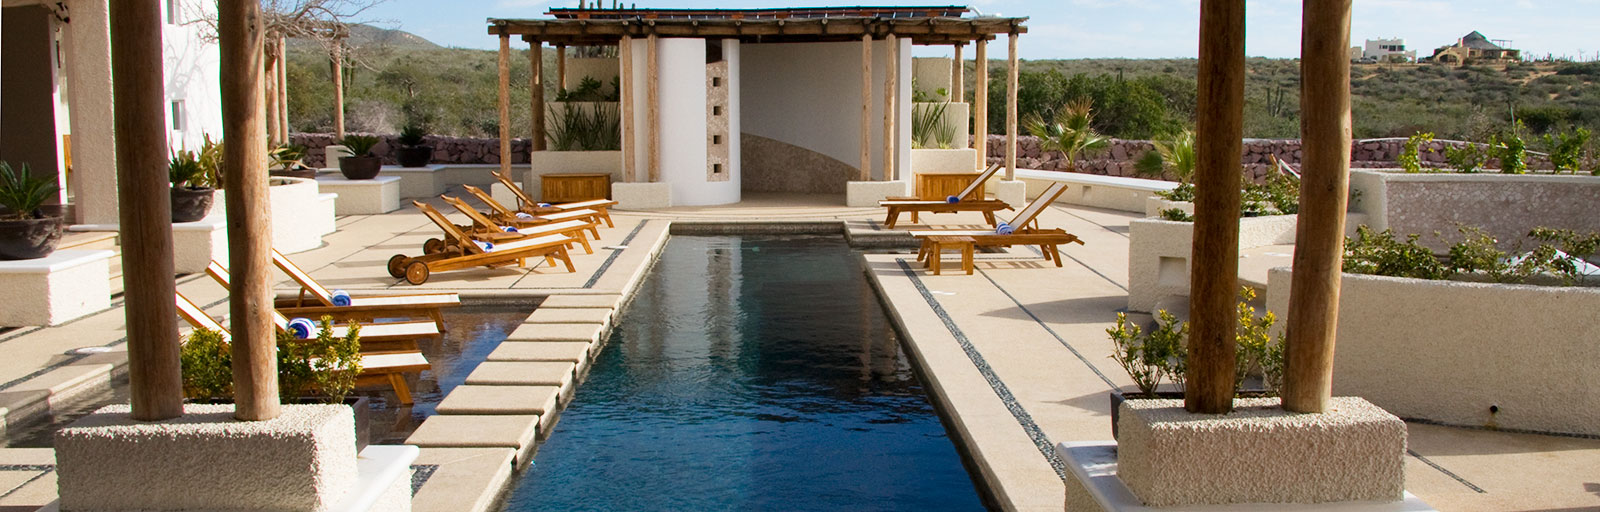 Mexico Yoga Retreat Center in Baja: Swimming Pool & Hot Tub